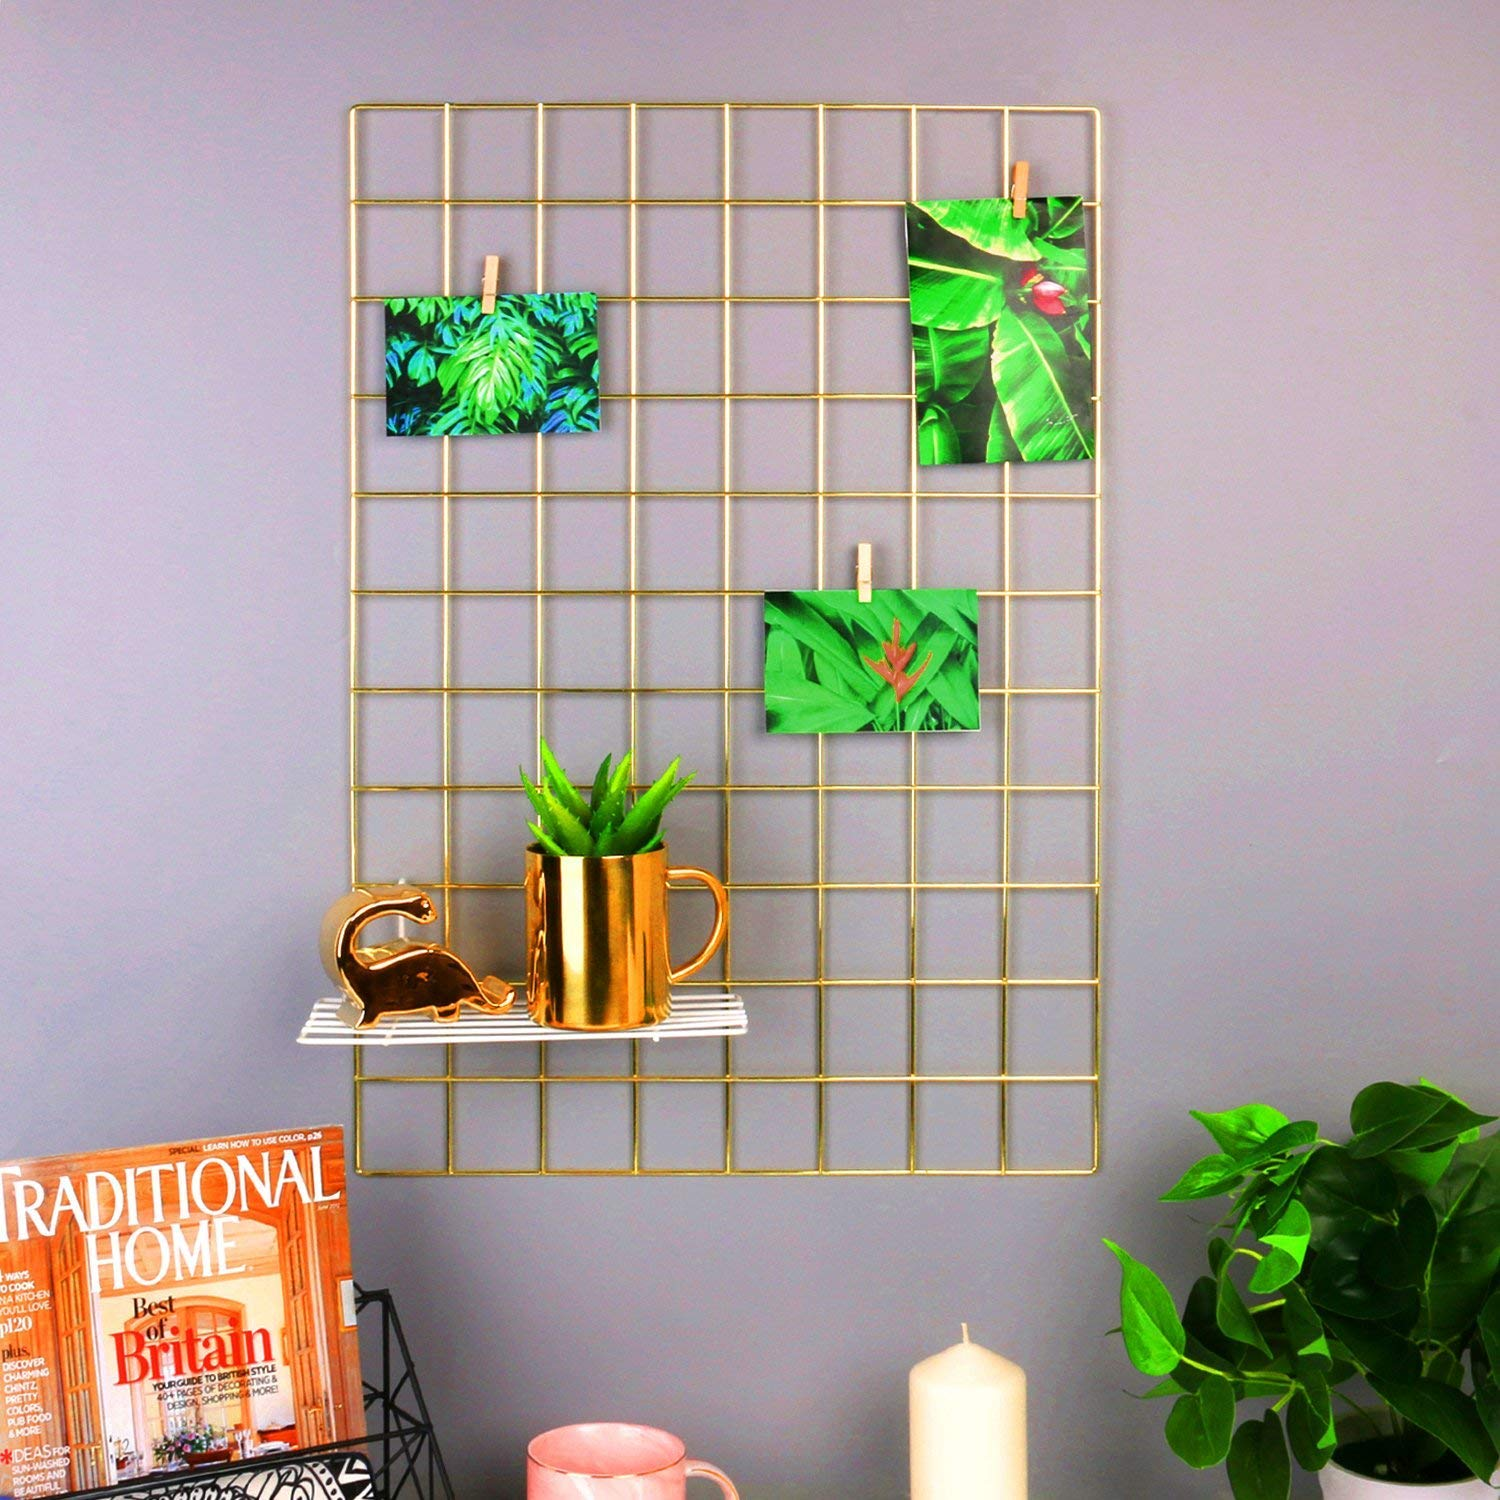 Gold 17.7 x 25.6 Zksanmer  Mesh Wire Grid Photo Wall Bold Network Stalls Shelves Exhibition Display On The Wall//Wall Decoration//Organizer